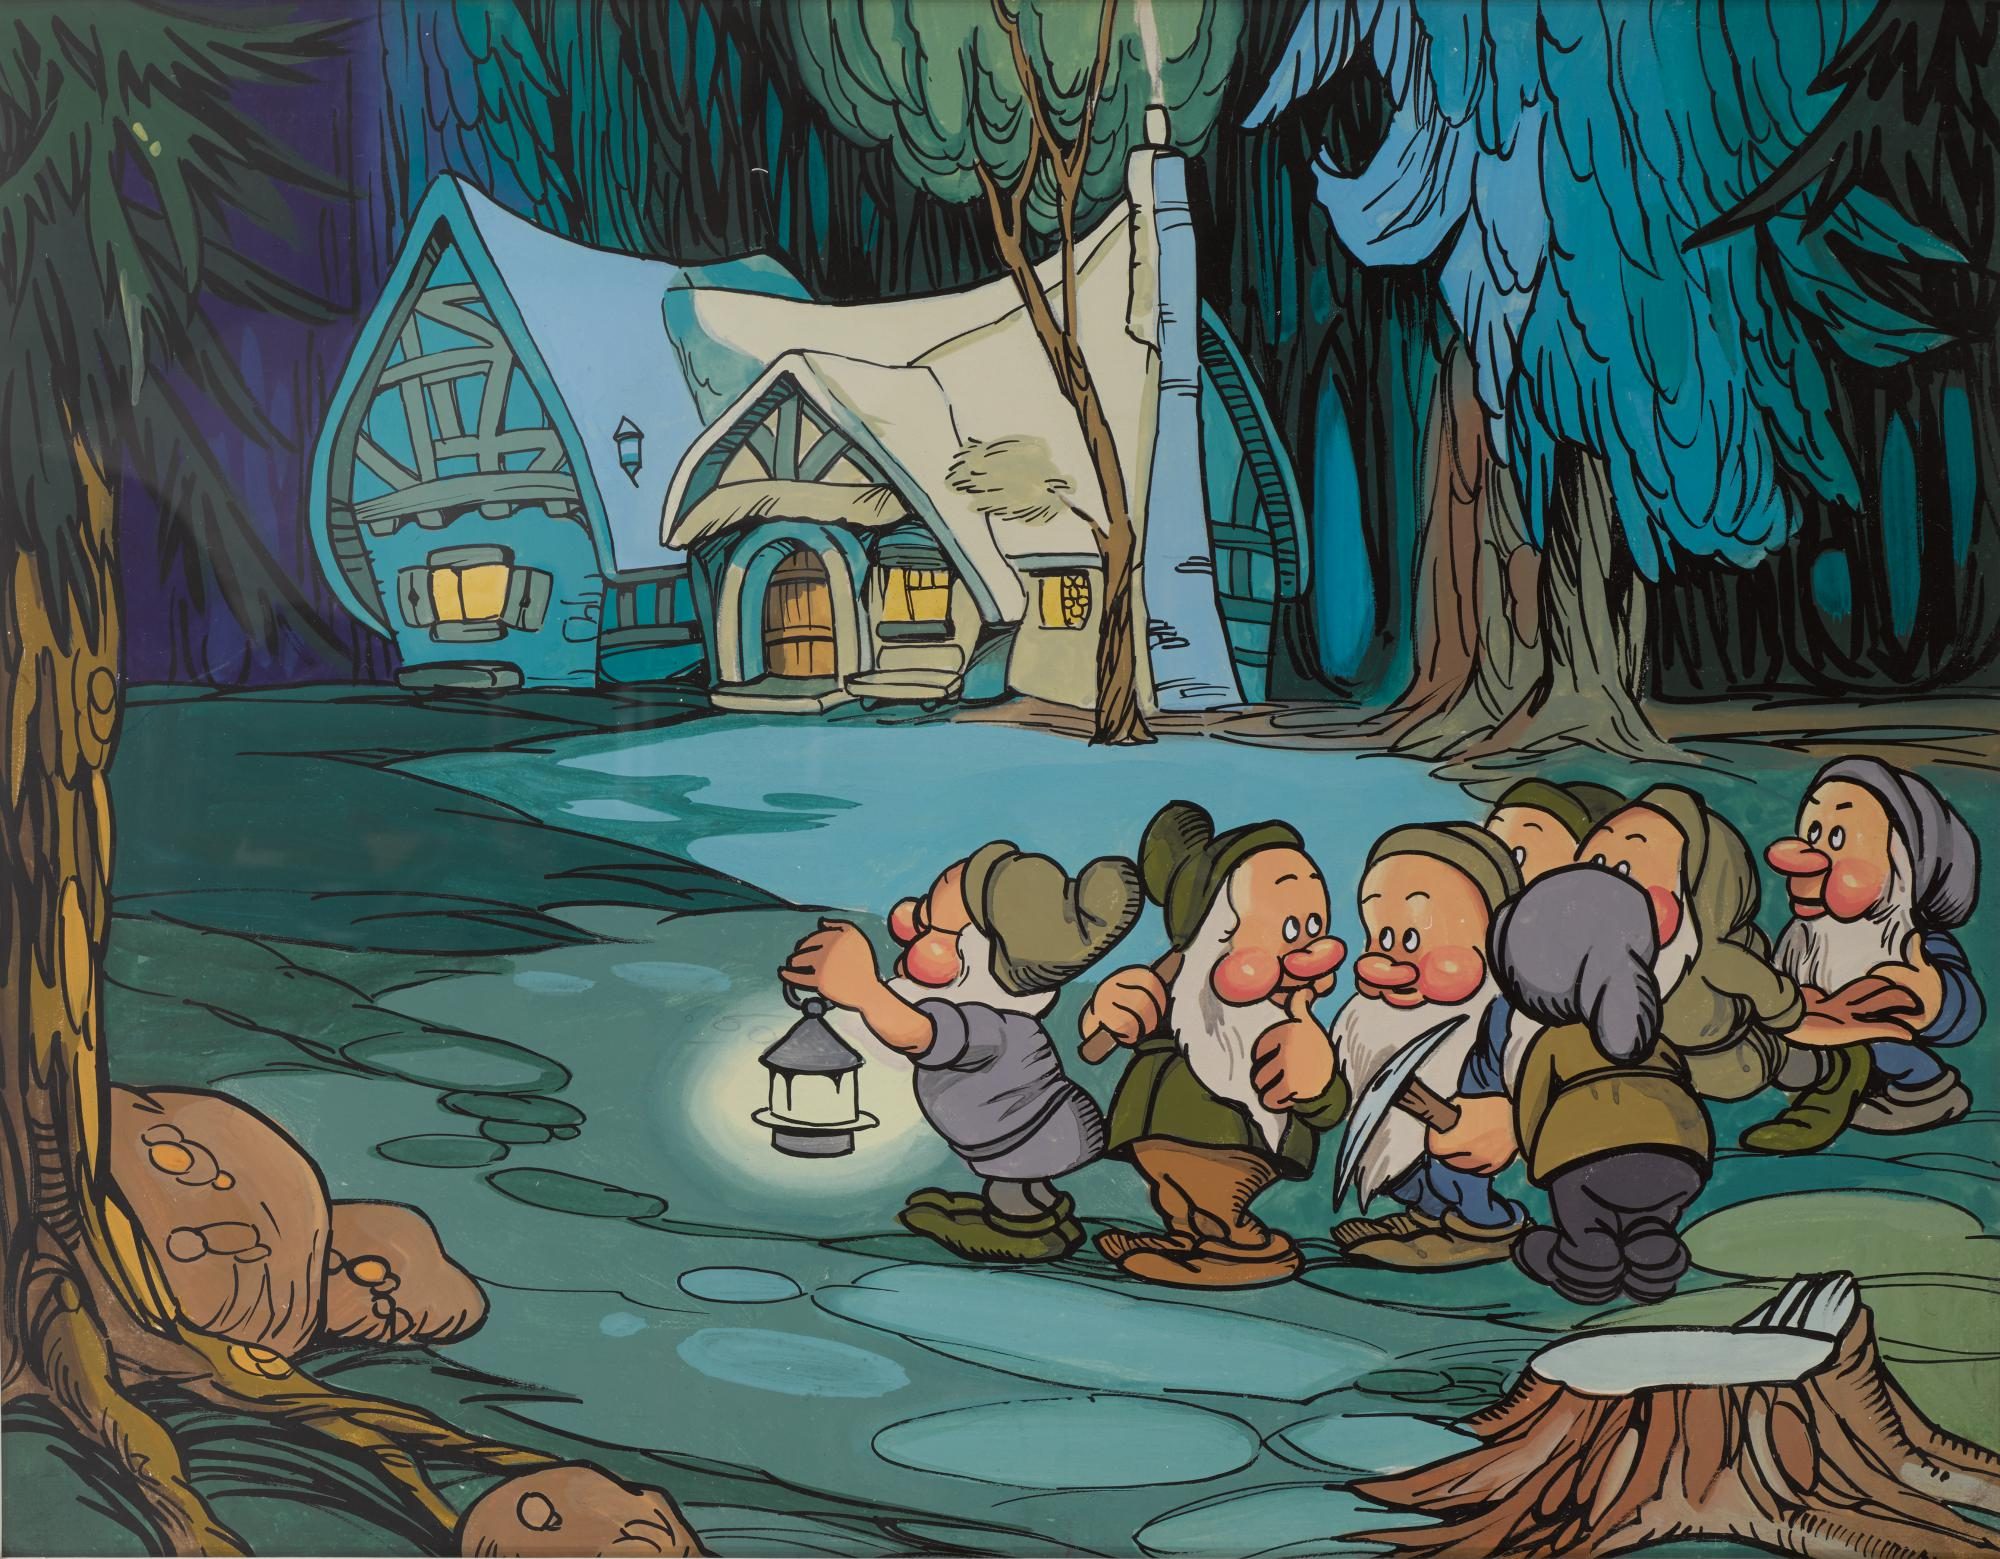 Snow White And The Seven Dwarfs 1937 Original Artwork Dwarfs Outside Cottage At Night British Original Film Posters Online Collectibles Sotheby S